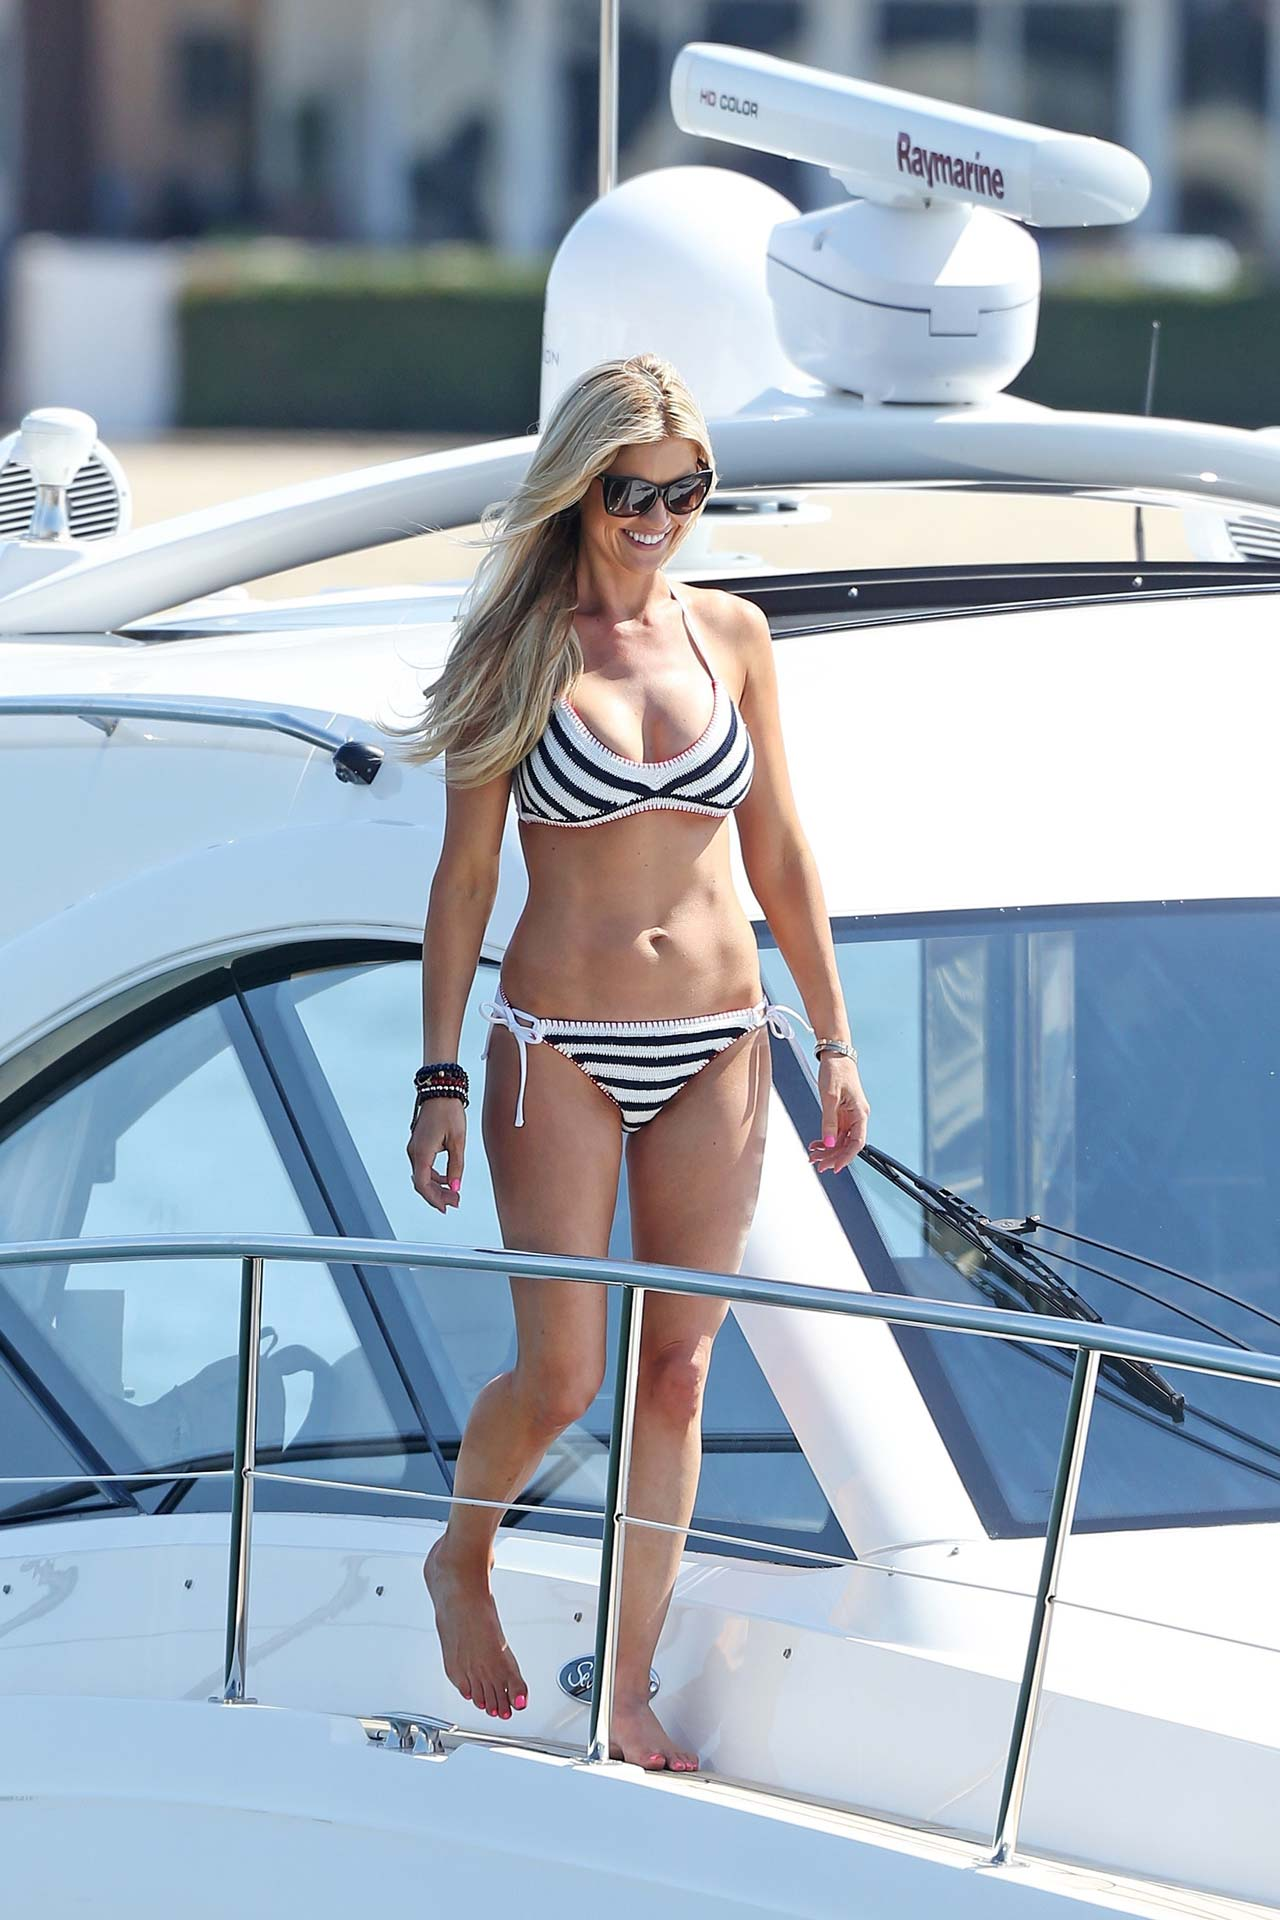 Newport, CA  - *EXCLUSIVE* Christina El Moussa and Doug Spedding spend the 4th of July on her boat  'Bad Decisions' formally know as 'Flips and Flops' in Newport, CA. The new couple spent the afternoon with her daughter Taylor. Shot on 07/04/17  Pictured: Christina El Moussa  BACKGRID USA 5 JULY 2017   BYLINE MUST READ: Mr Plow / BACKGRID  USA: +1 310 798 9111 / usasales@backgrid.com  UK: +44 208 344 2007 / uksales@backgrid.com  *UK Clients - Pictures Containing Children Please Pixelate Face Prior To Publication*